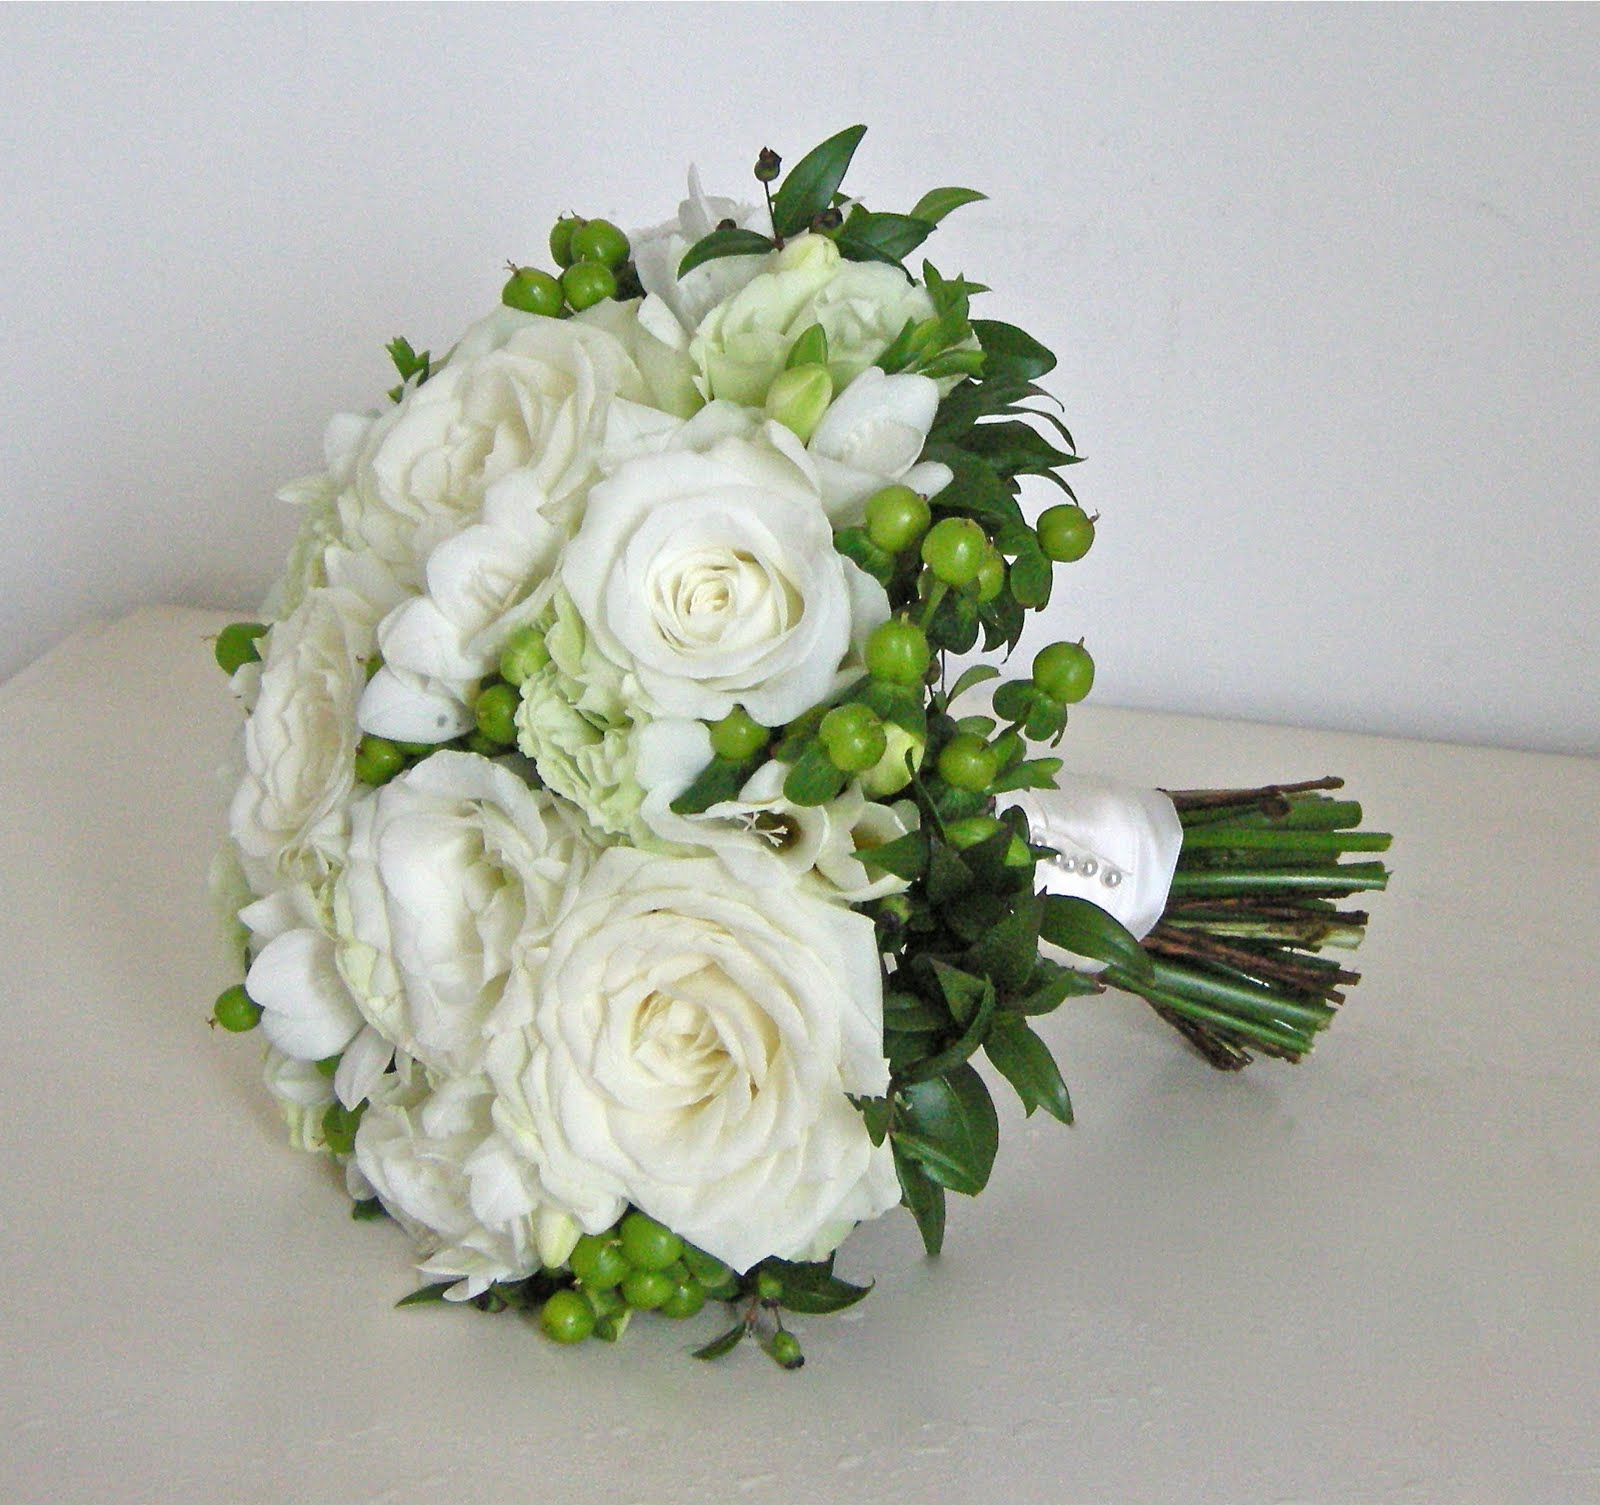 Wedding Flowers Blog Hollys Classic Green And White Wedding Flowers Rhinefield House